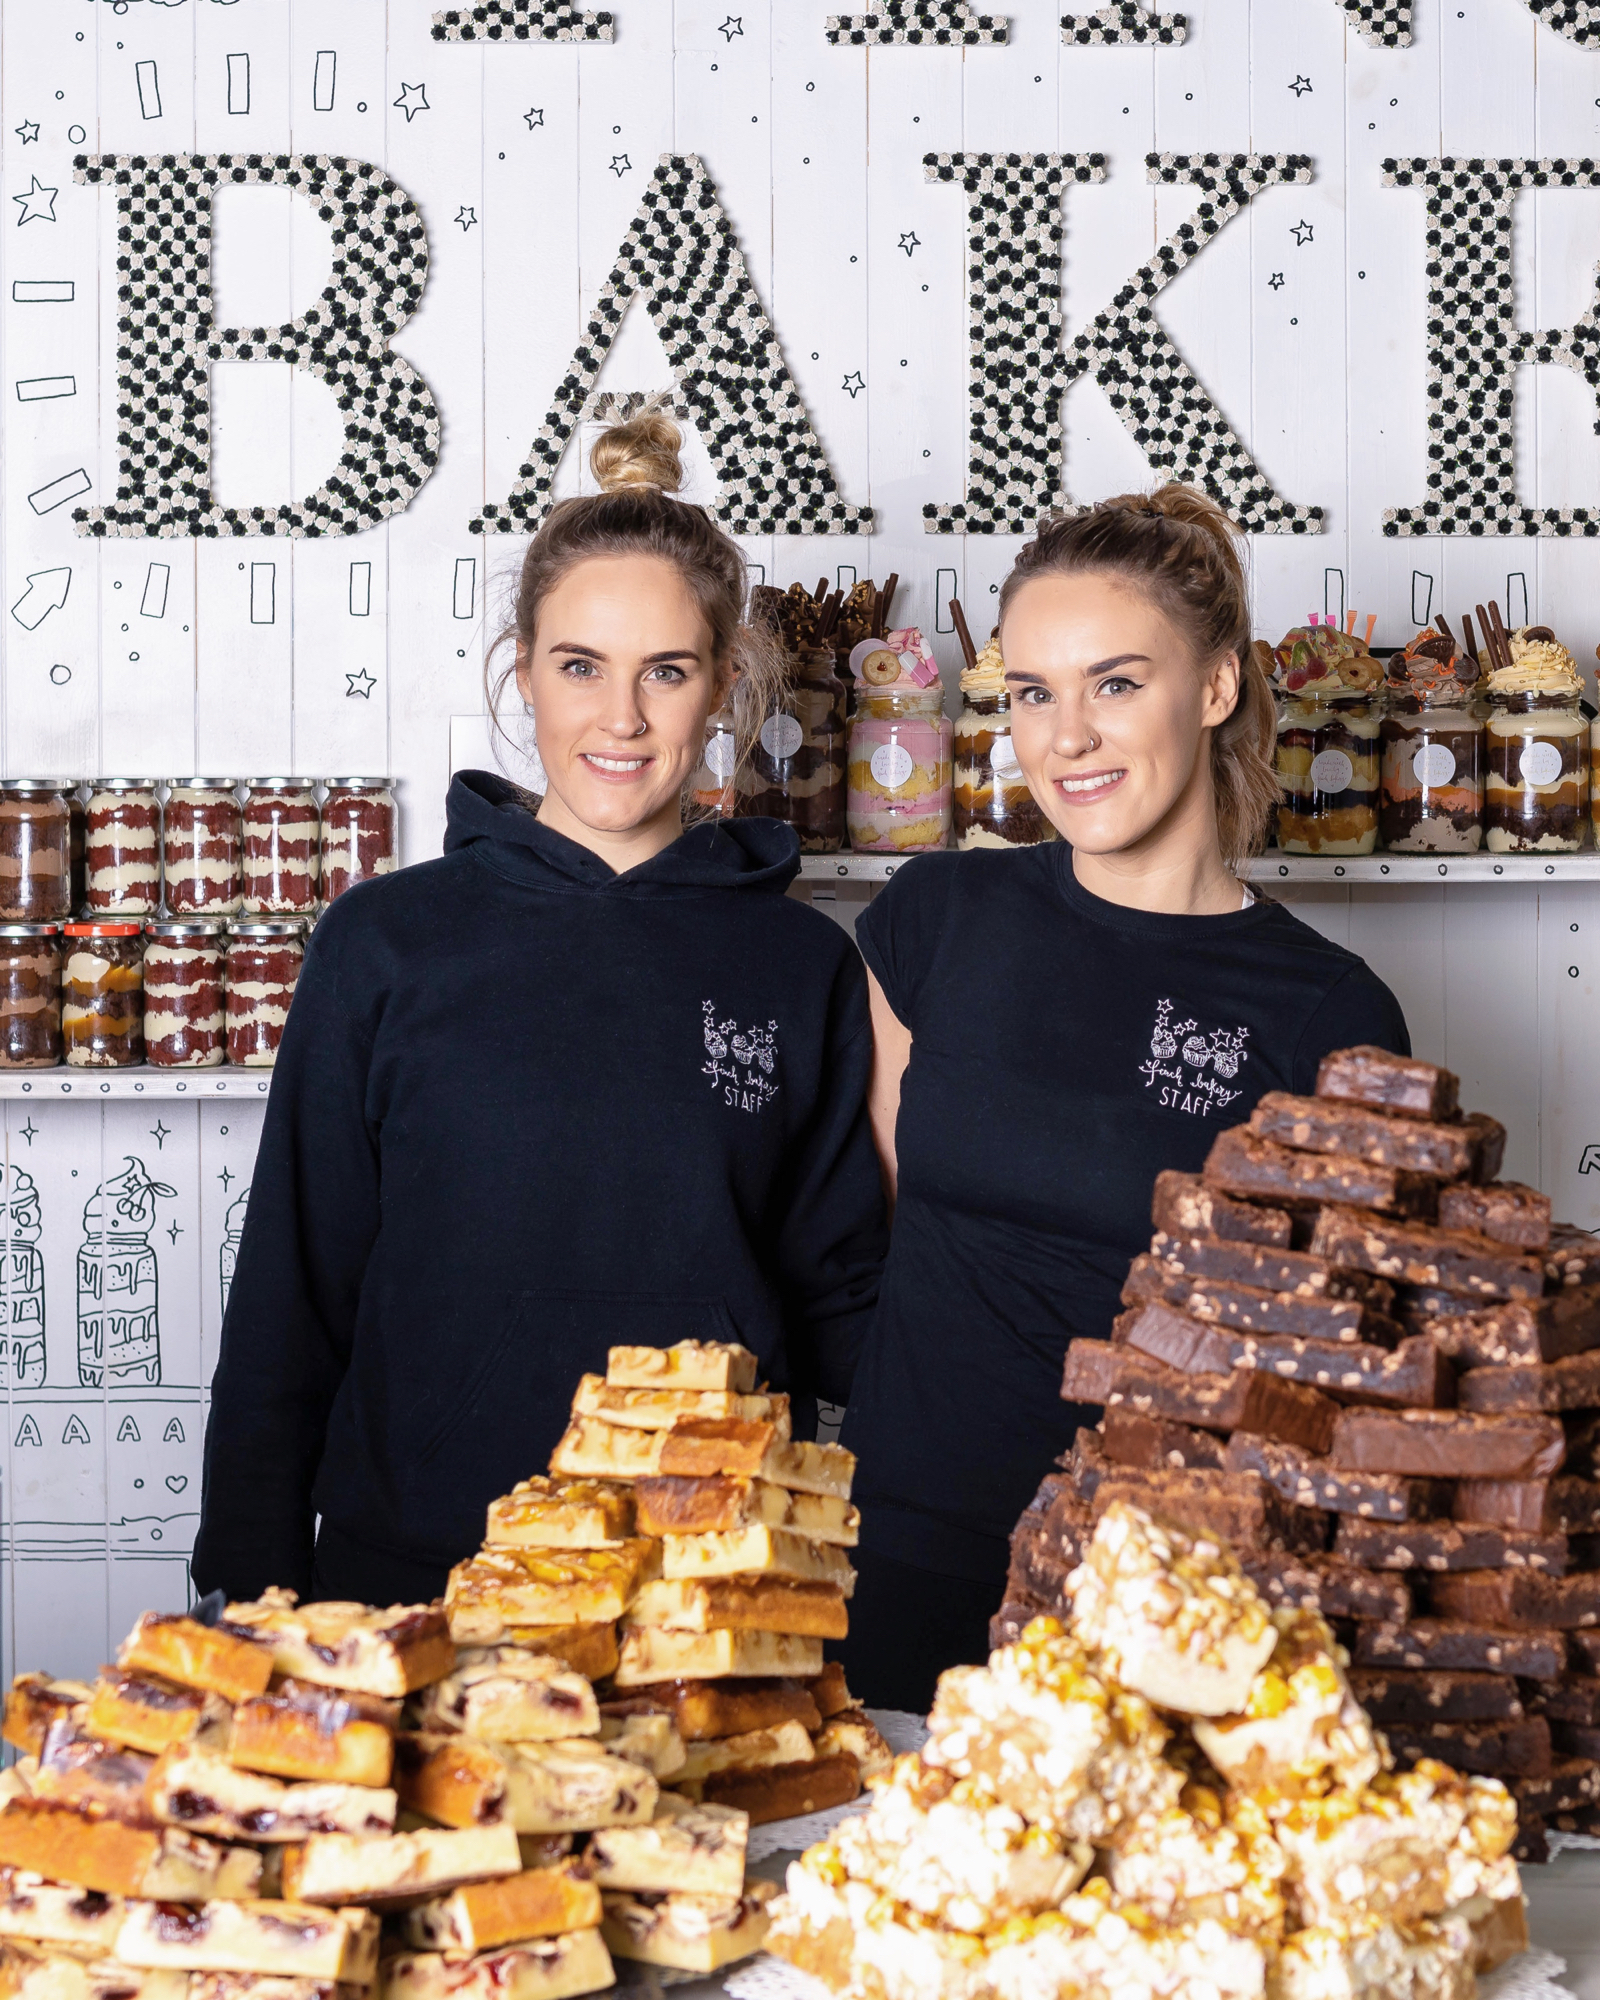 Lauren and Rachel Finch, Founders of Finch Bakery, an award winning bakery in Lancashire